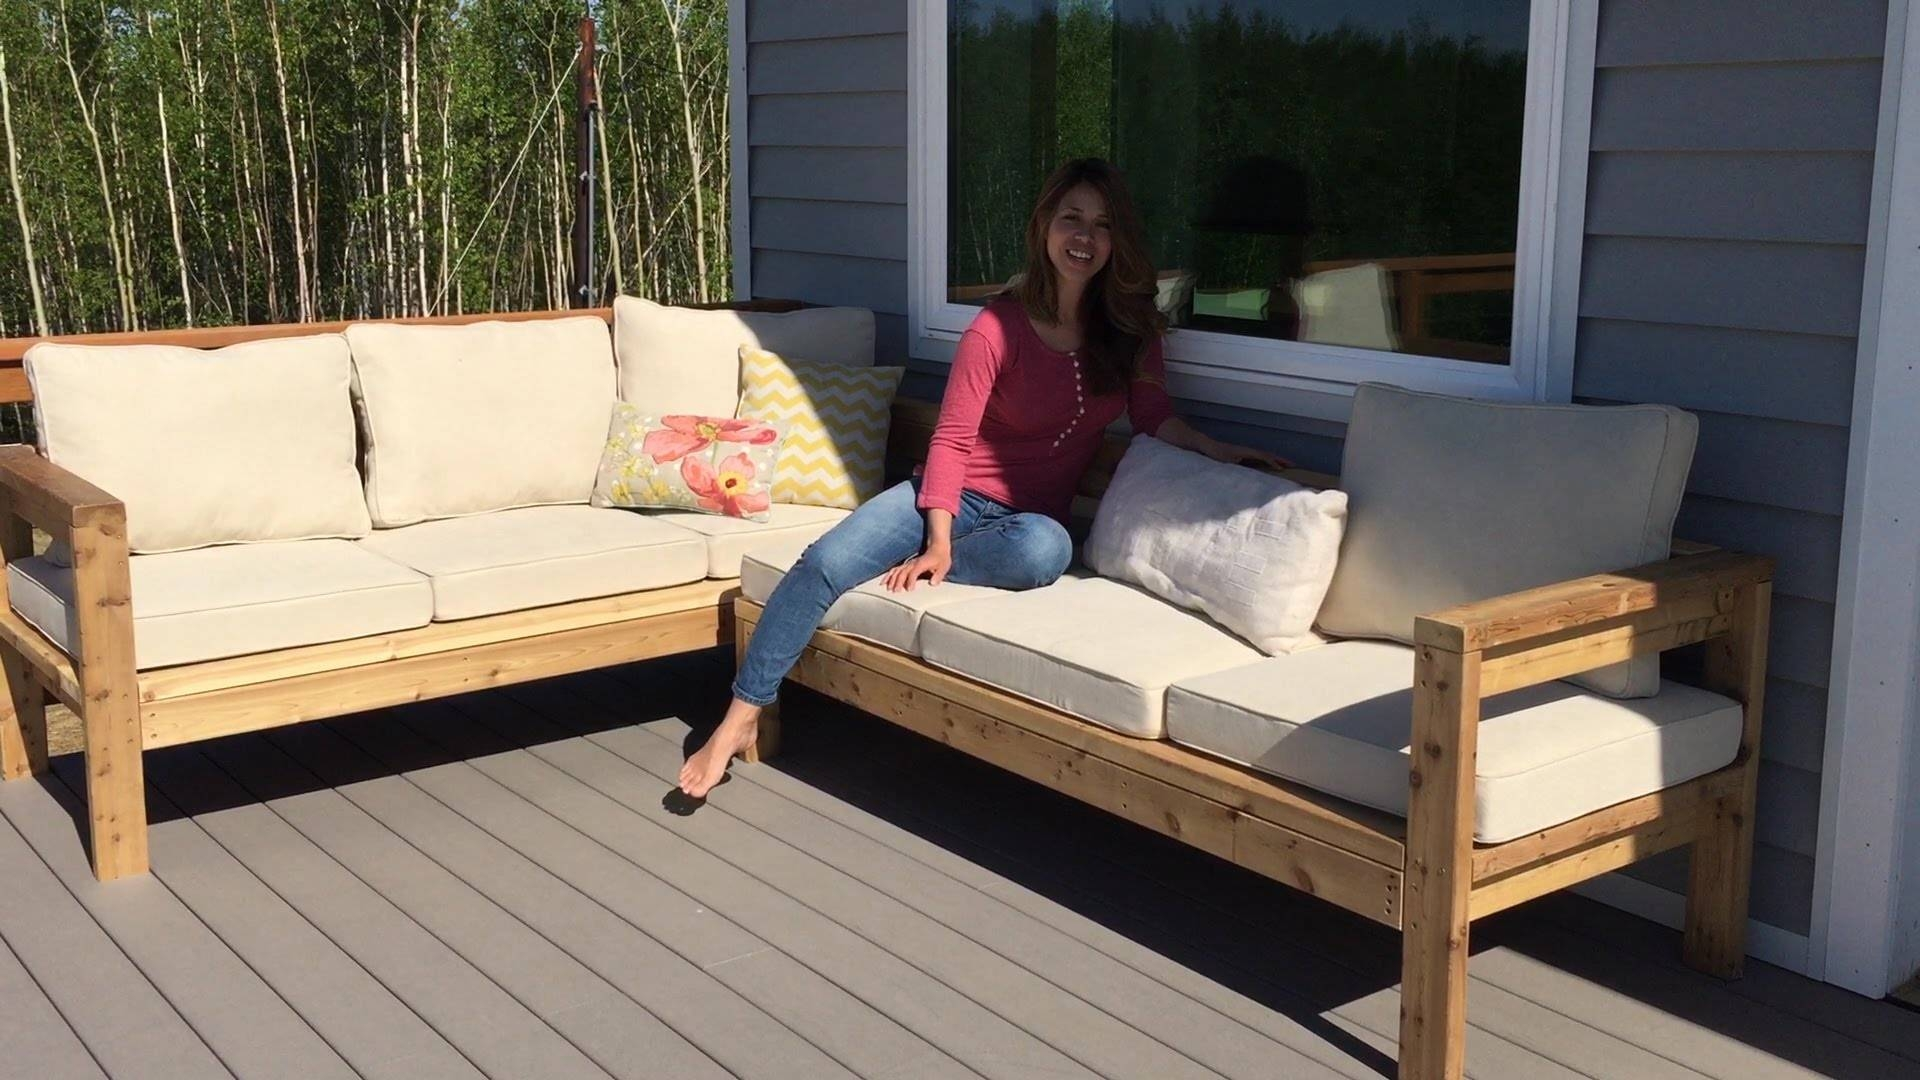 How To Build A 2X4 Outdoor Sectional Tutorial – Youtube Pertaining To Building A Sectional Sofas (View 2 of 15)